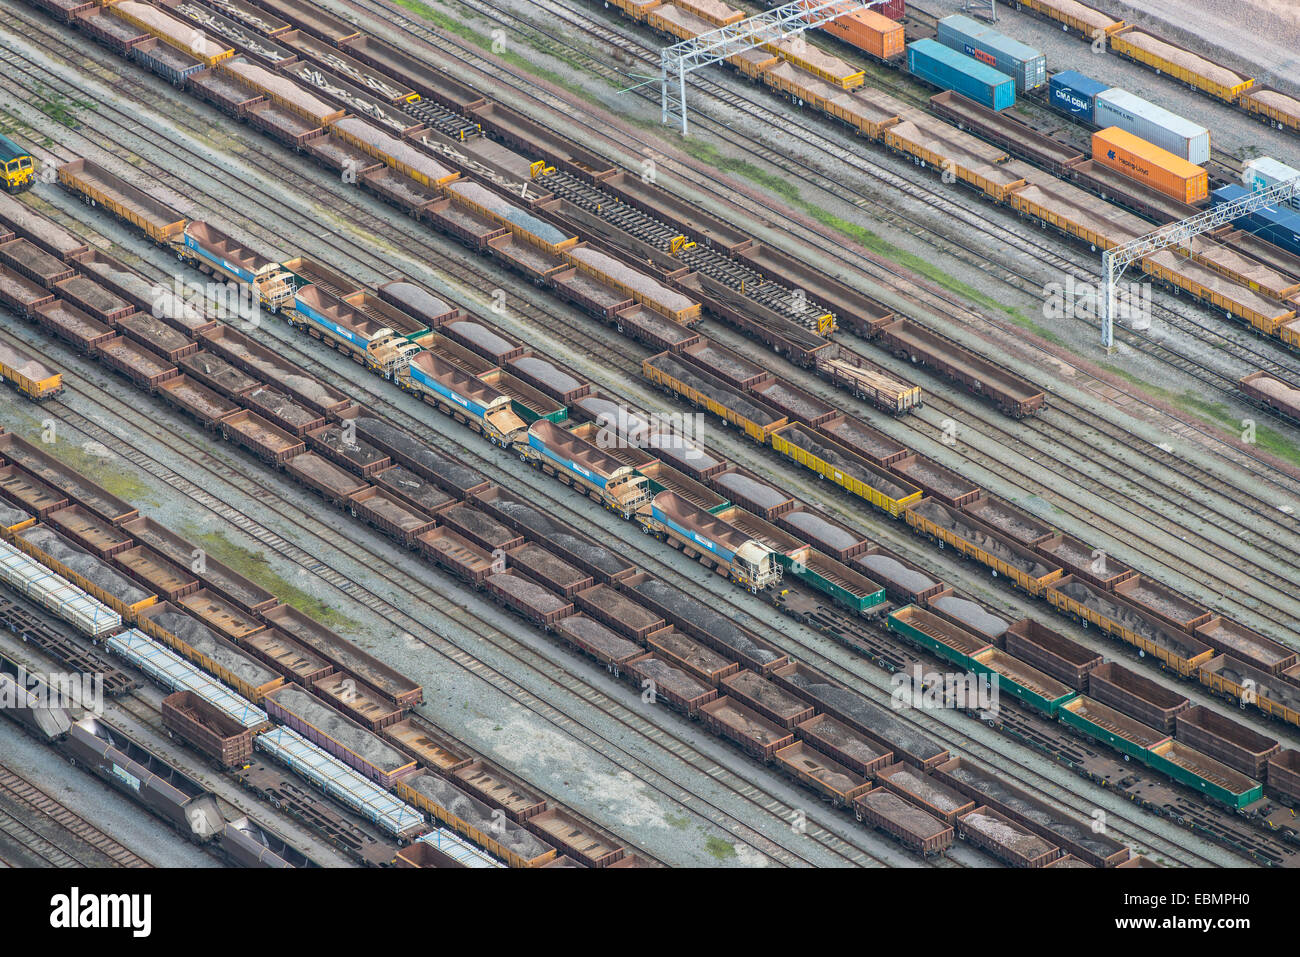 A close up aerial view of a railway marshalling yard just south of Crewe in Cheshire - Stock Image